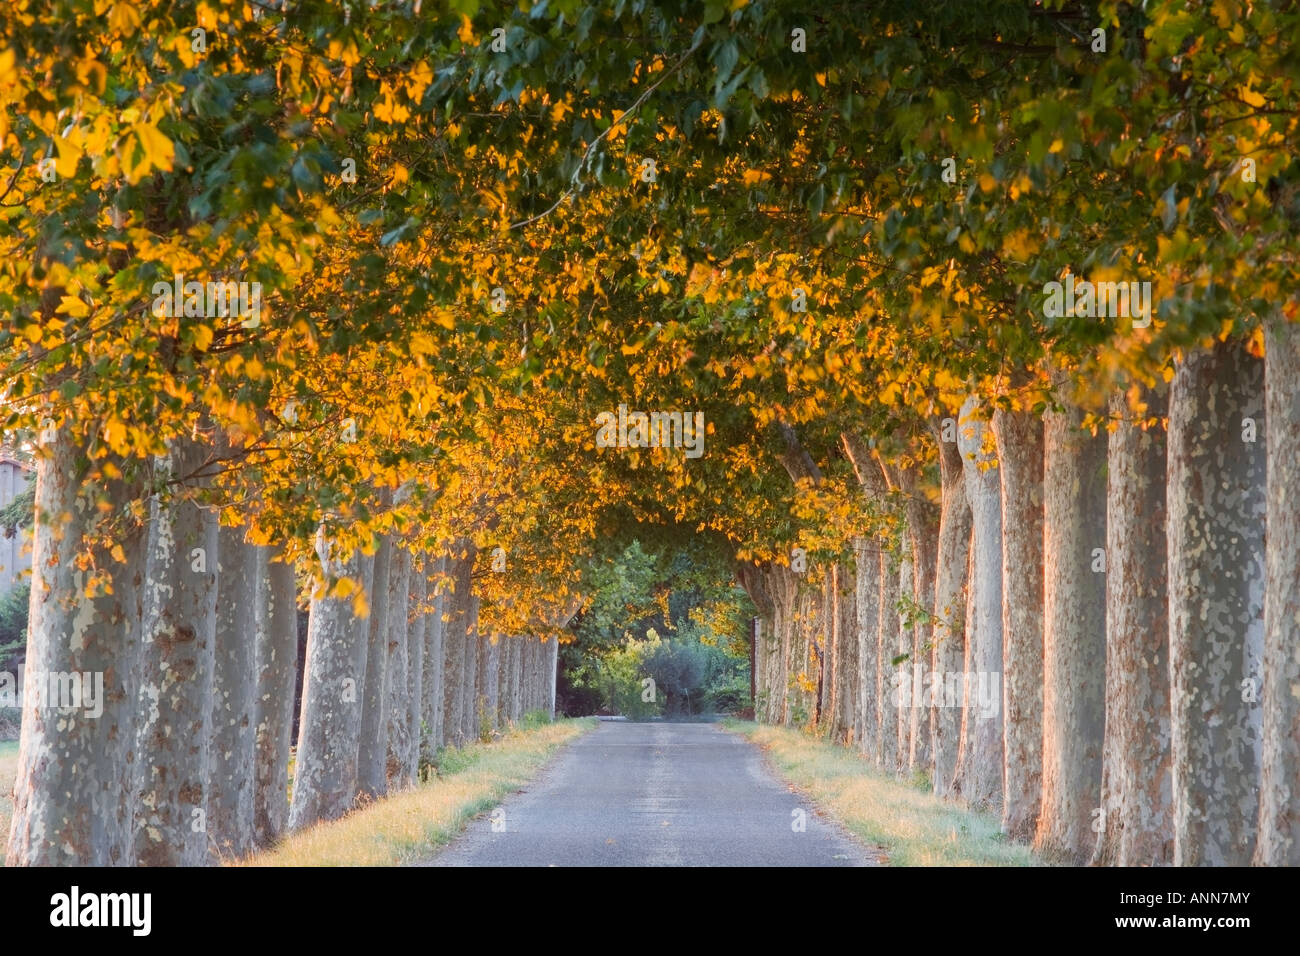 France Languedoc Roussillon Provence Tree Lined avenue - Stock Image